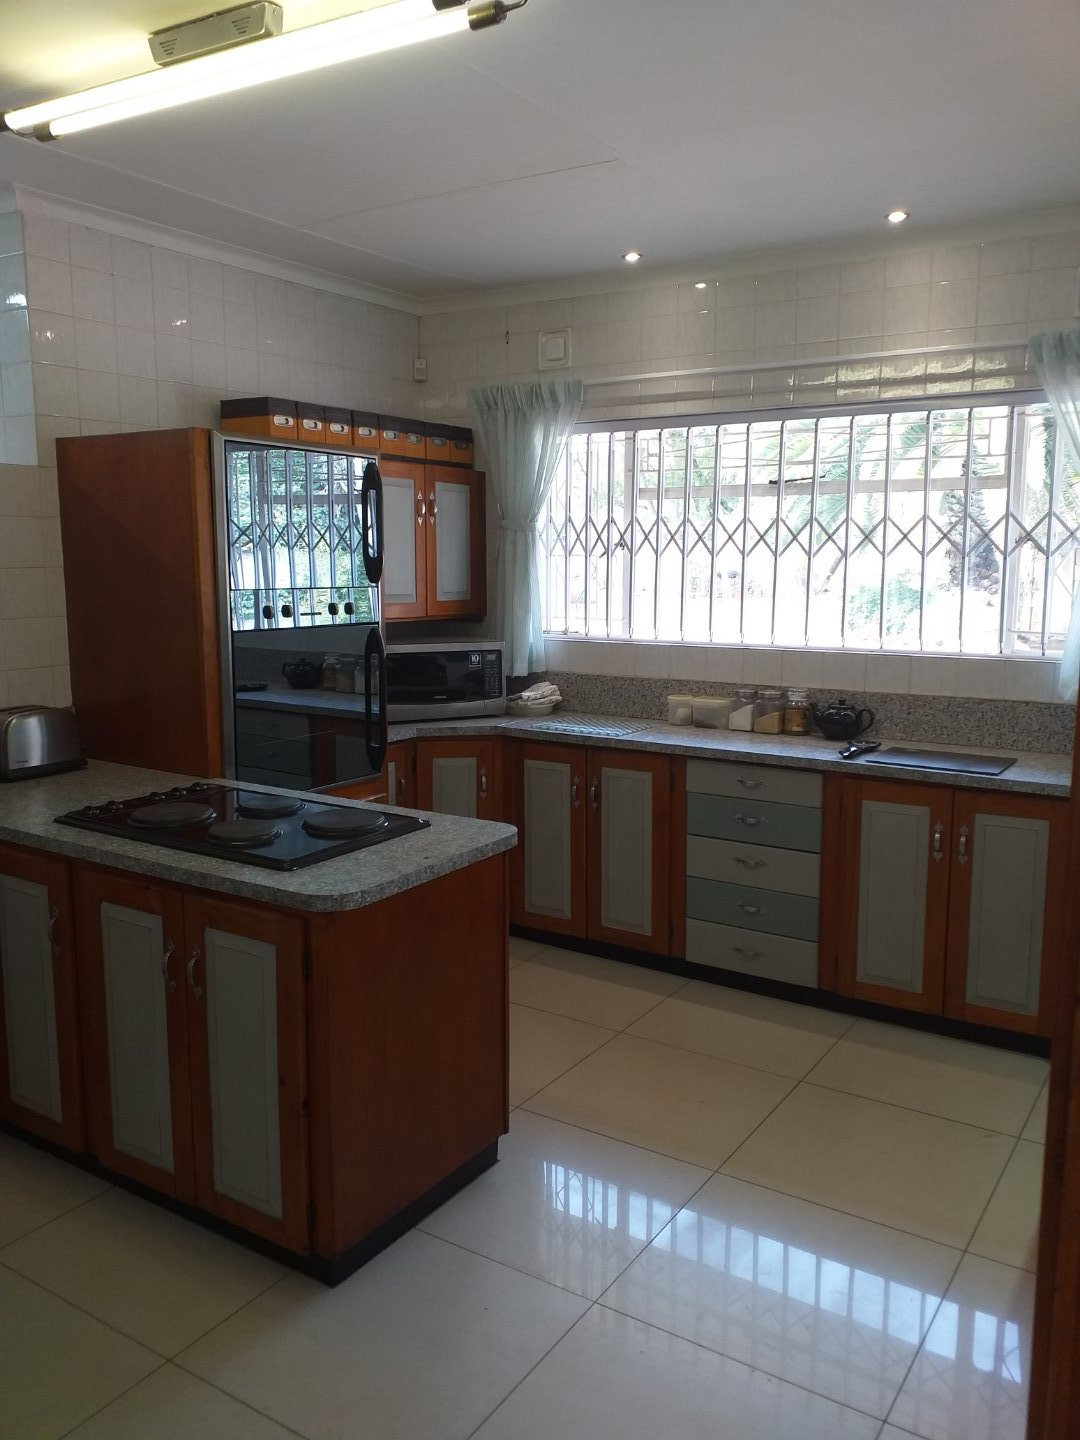 3 Bedroom House To Rent In Three Rivers East